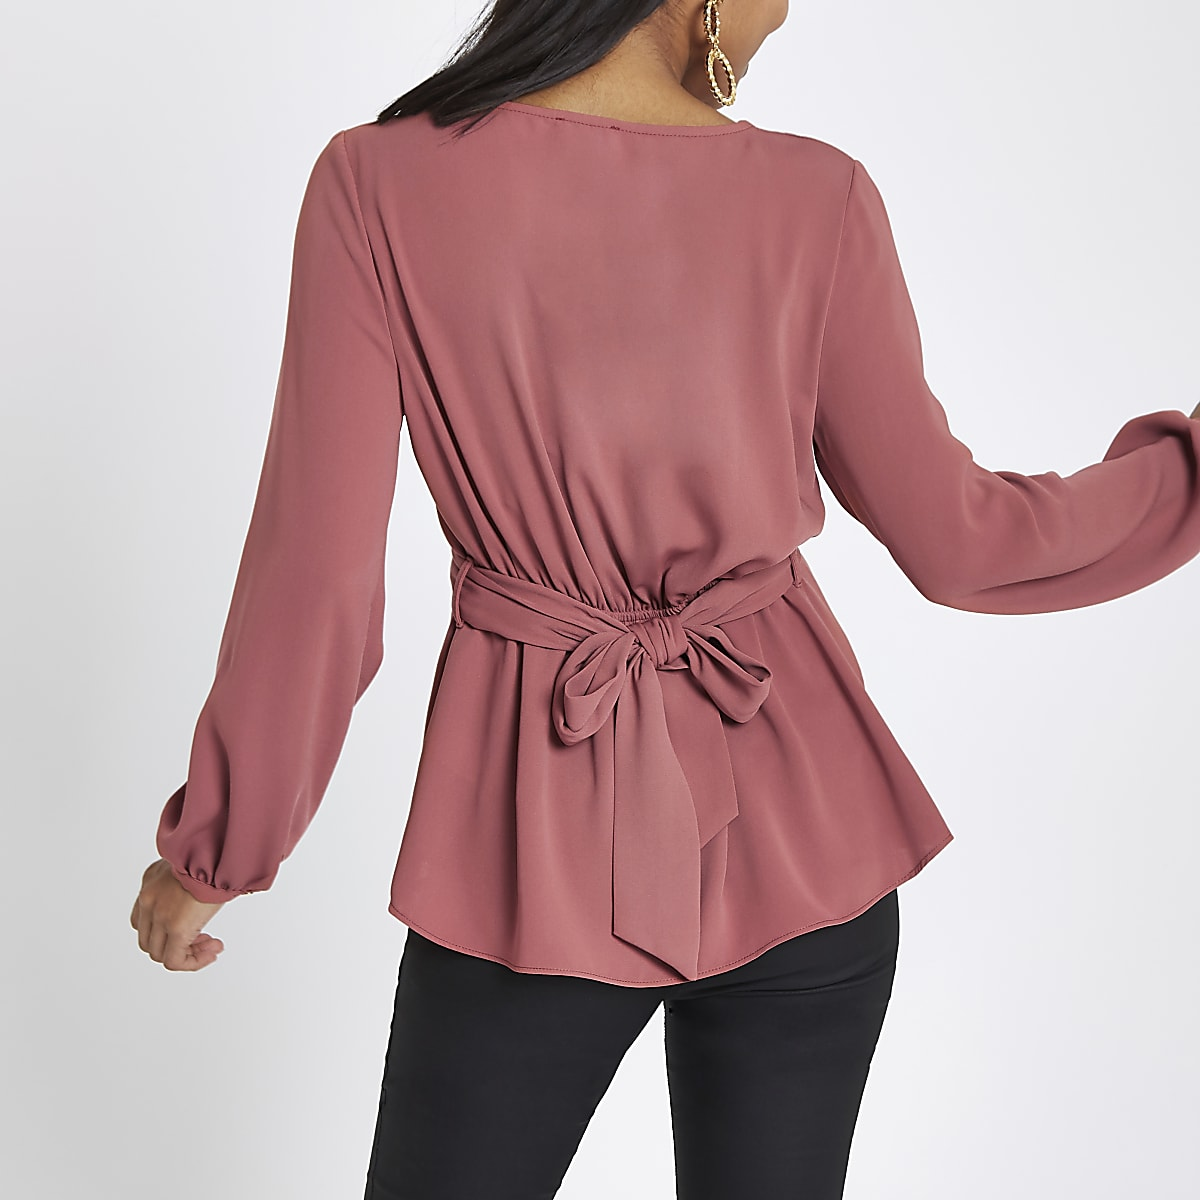 e02cf91d2c36f2 Petite copper twist front long sleeve blouse - Blouses - Tops - women